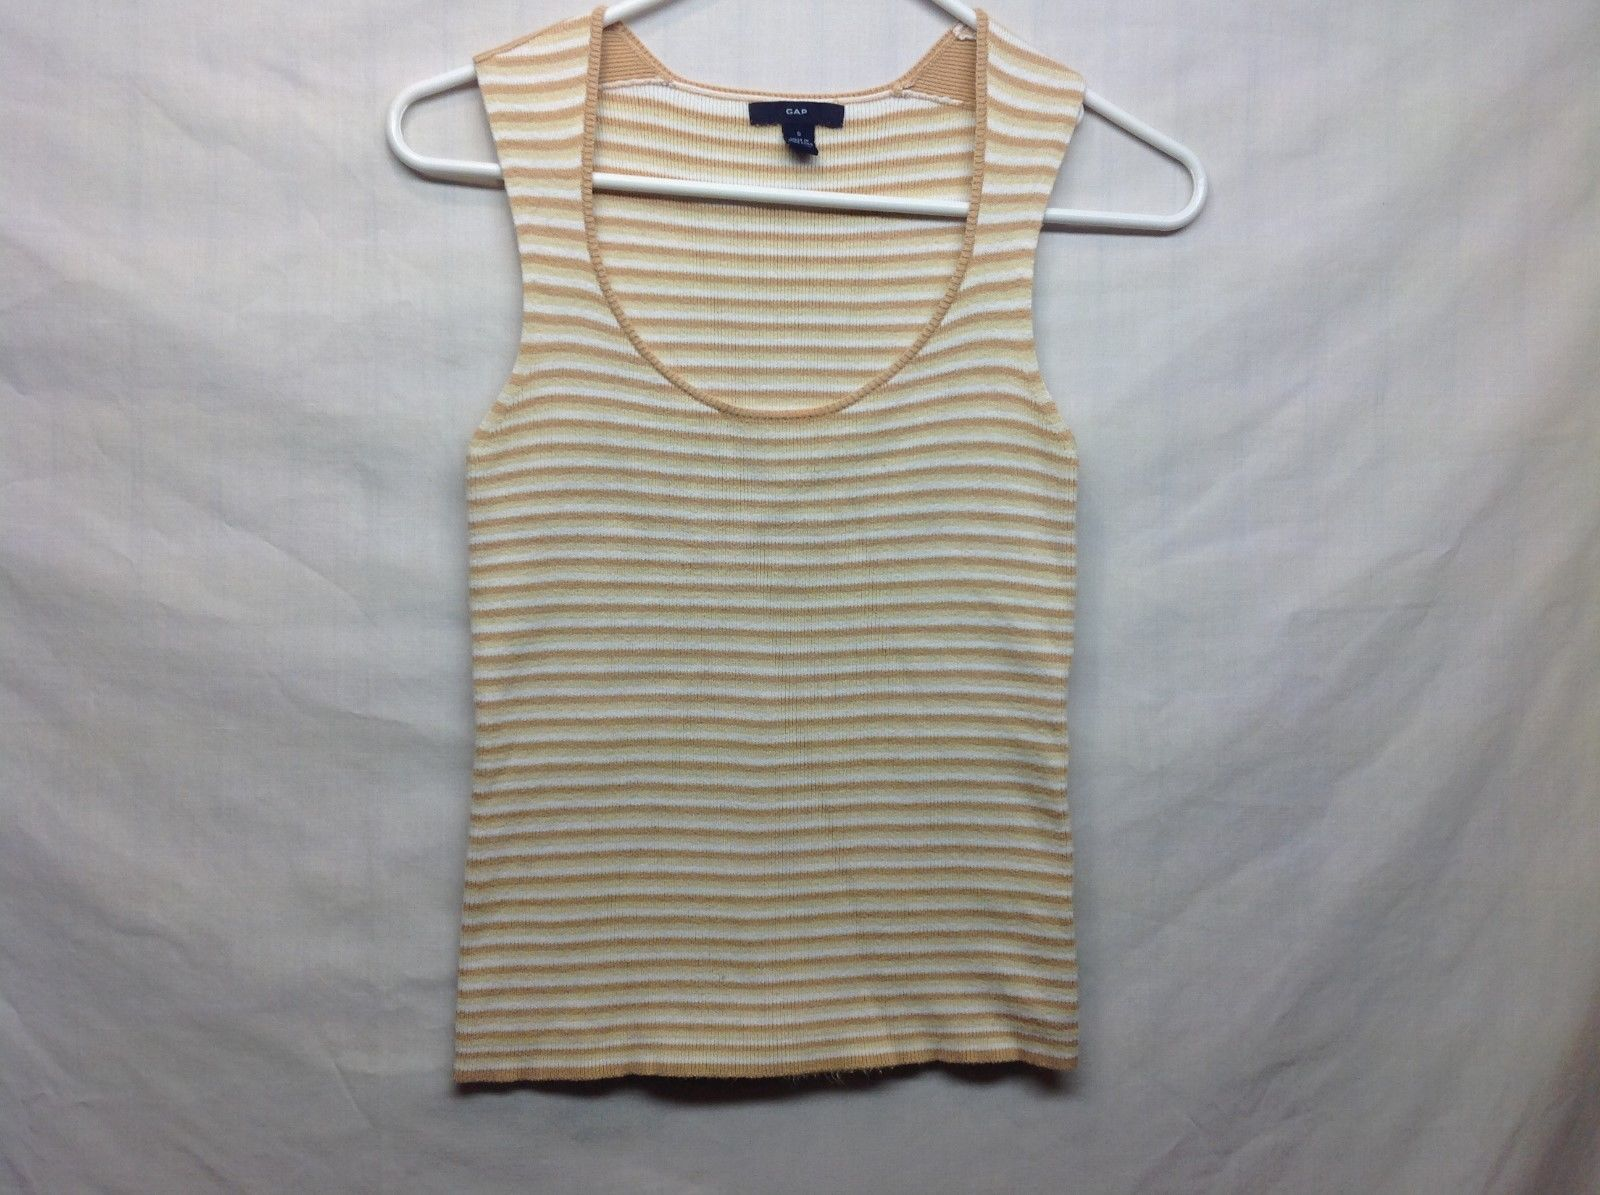 Ladies White Cream Beige Striped Scoop Neck Sweater Vest by GAP Sz S